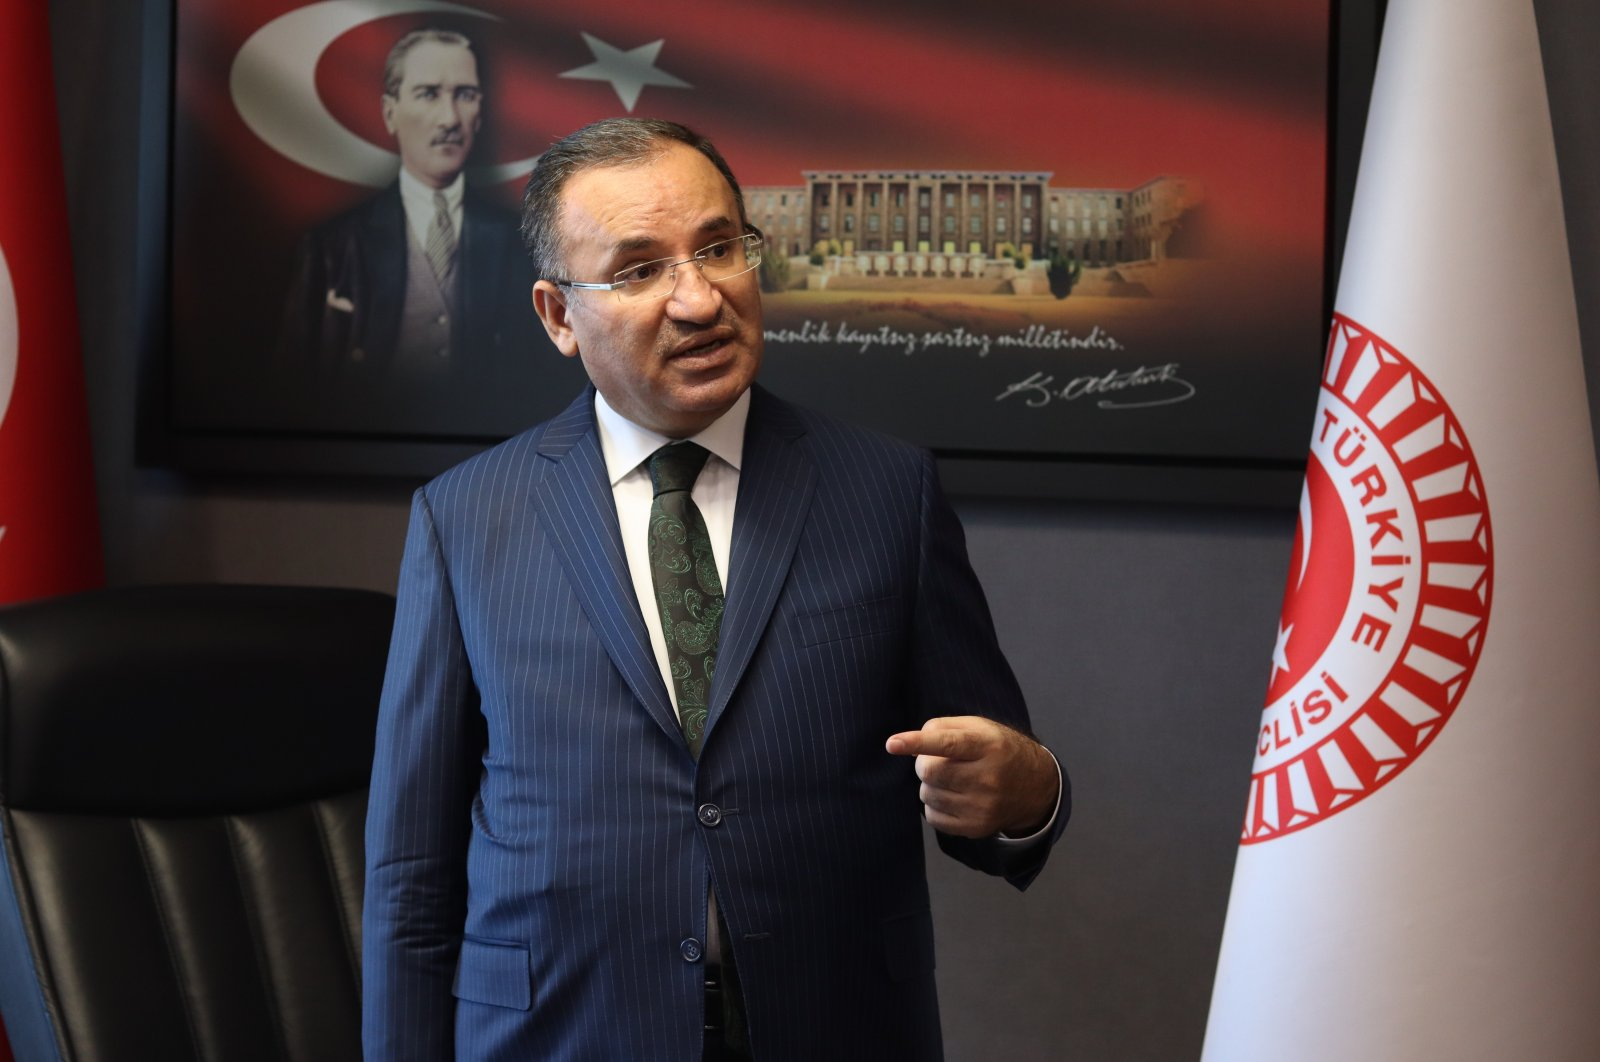 The head of the Turkish Grand National Assembly's (TBMM) Constitutional Commission, former Justice Minister Bekir Bozdağ, speaks during an interview with Daily Sabah, Ankara, Turkey, Feb. 24, 2021. (Photo by Daily Sabah)